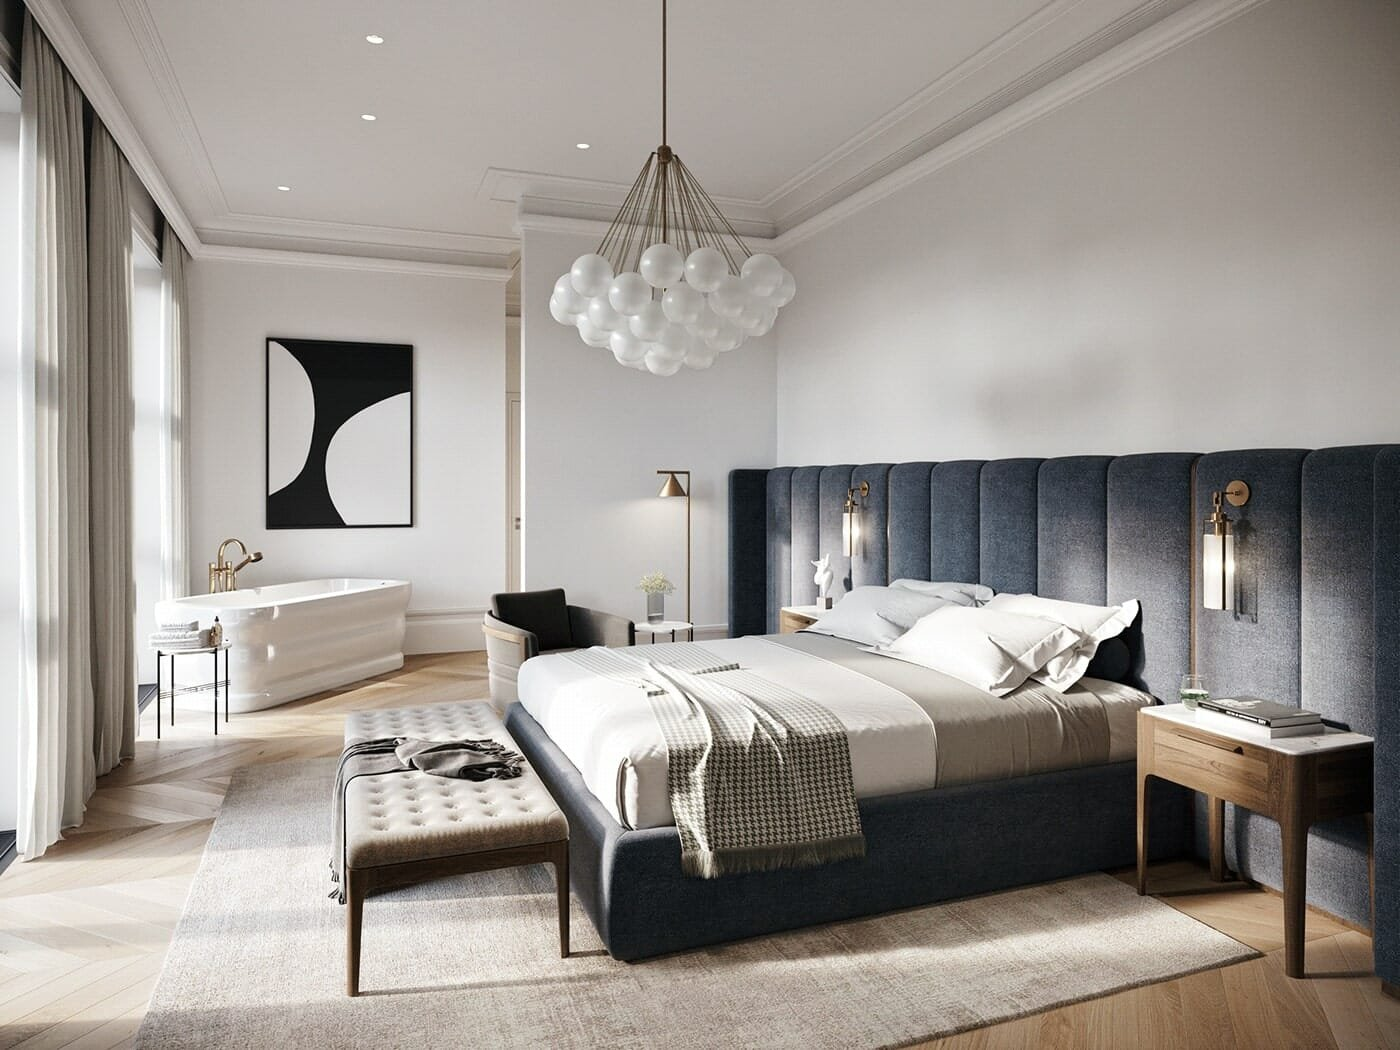 Minimal & Modern master bedroom design for a sleek look